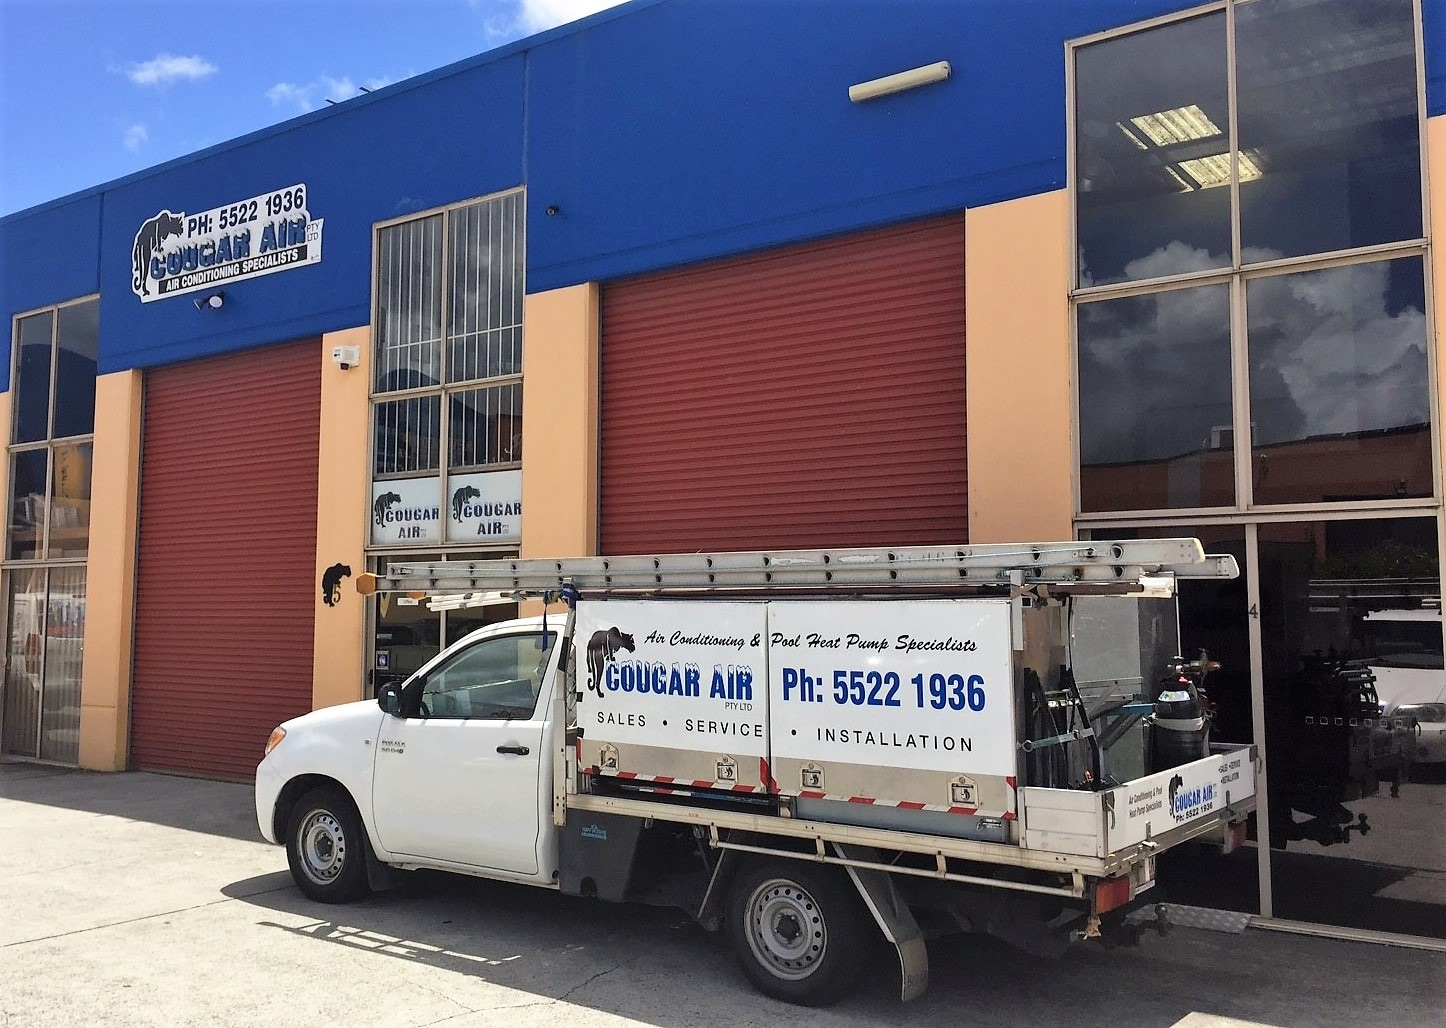 #134BB8 Cougar Air Pty Ltd Commercial Air Conditioning Unit 5  Brand New 9621 Hitachi Air Conditioning Repairs Gold Coast images with 1446x1028 px on helpvideos.info - Air Conditioners, Air Coolers and more